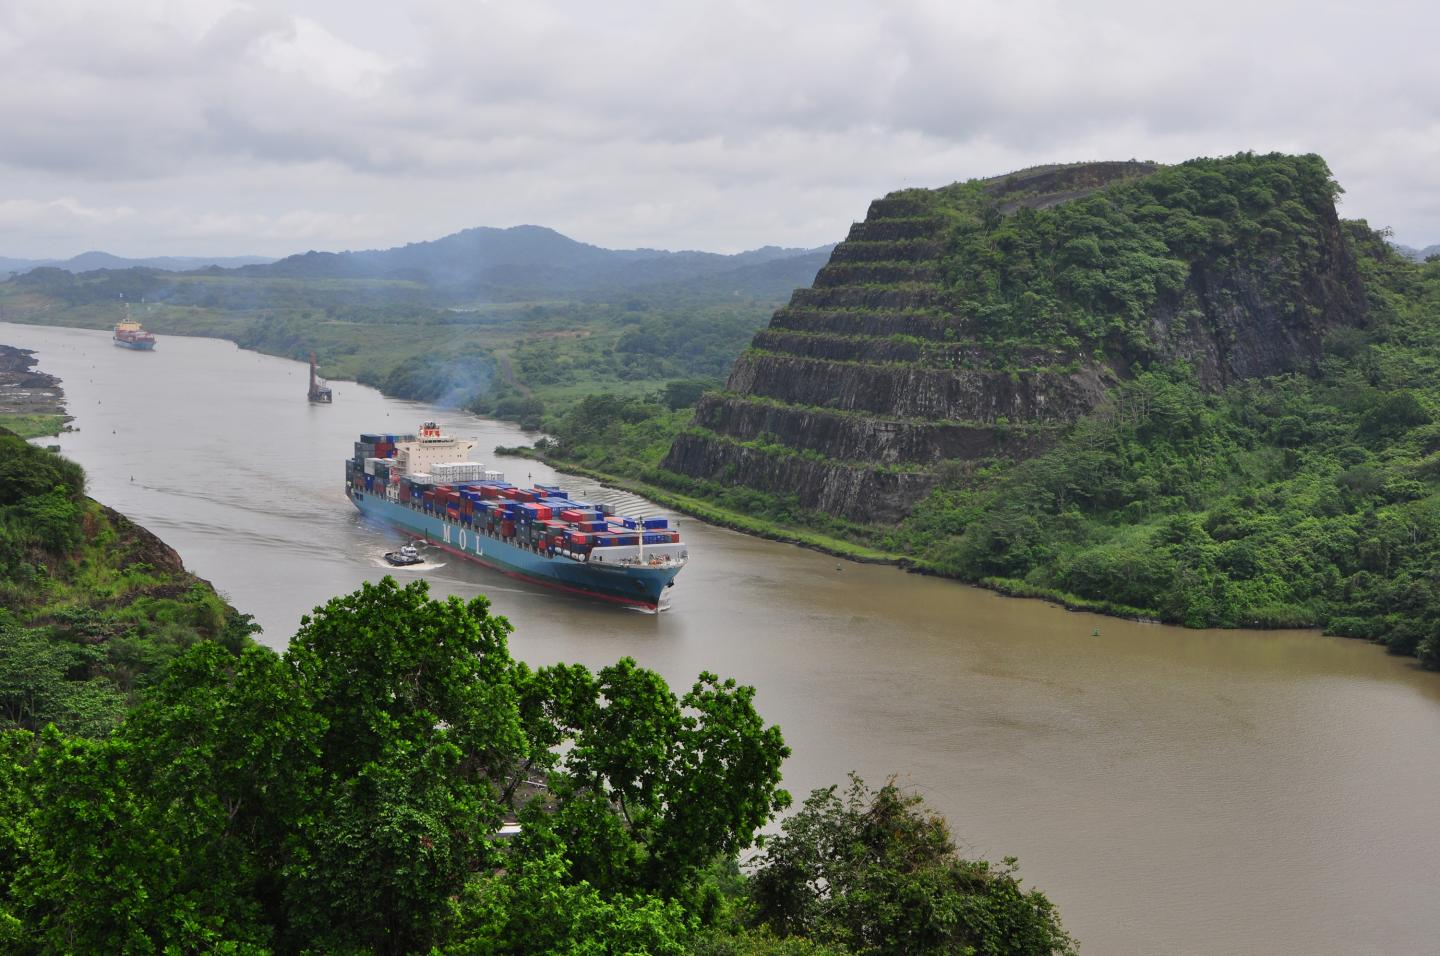 Changes in Tectonic Activity May Have Shaped Composition and Structure Of Panama Canal Volcanic Rock